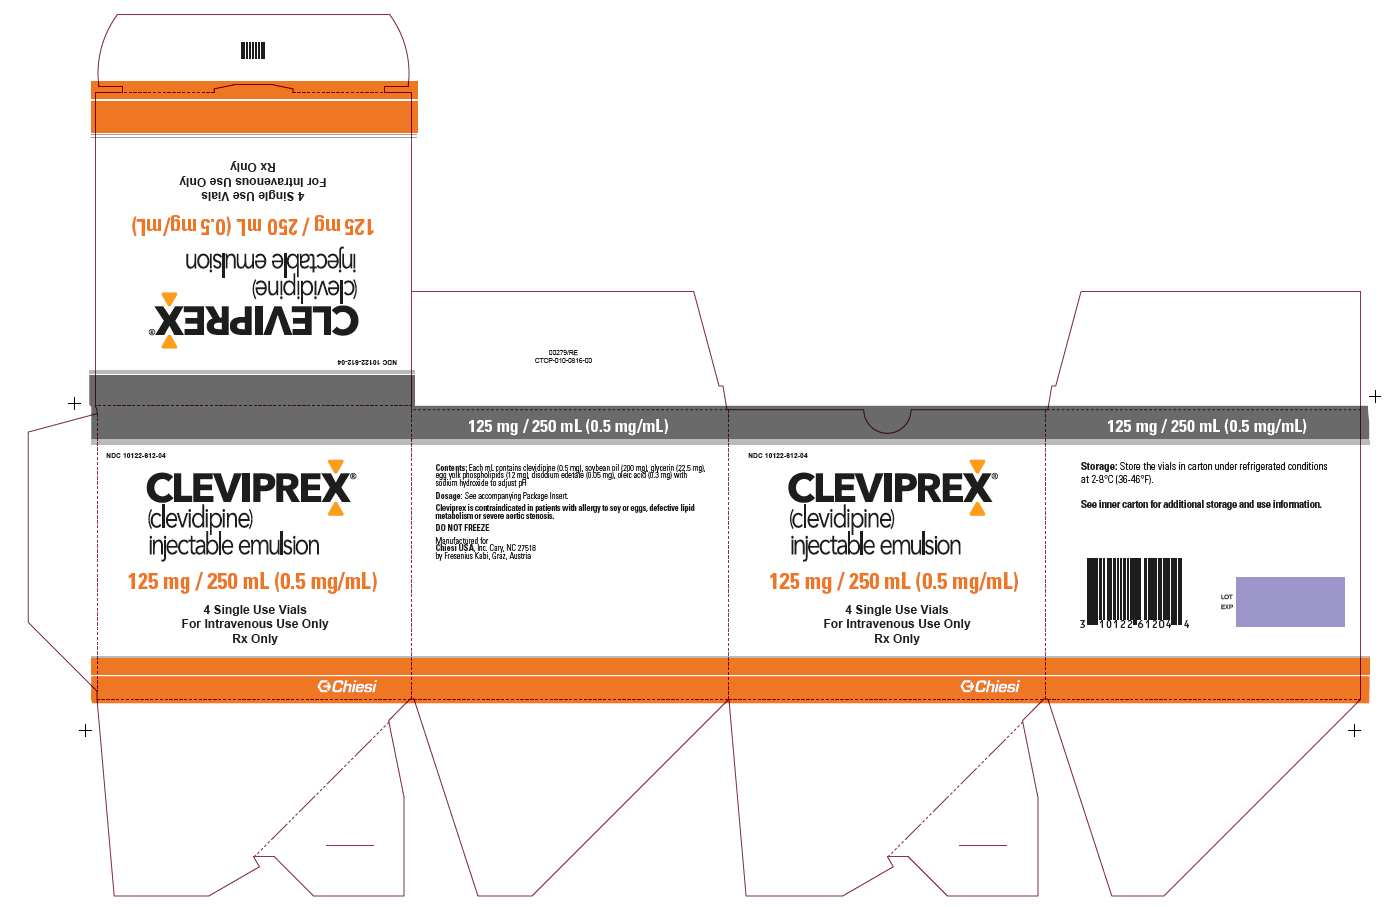 Package Label - Principal Display Panel - 125mg/250mL Outer Carton